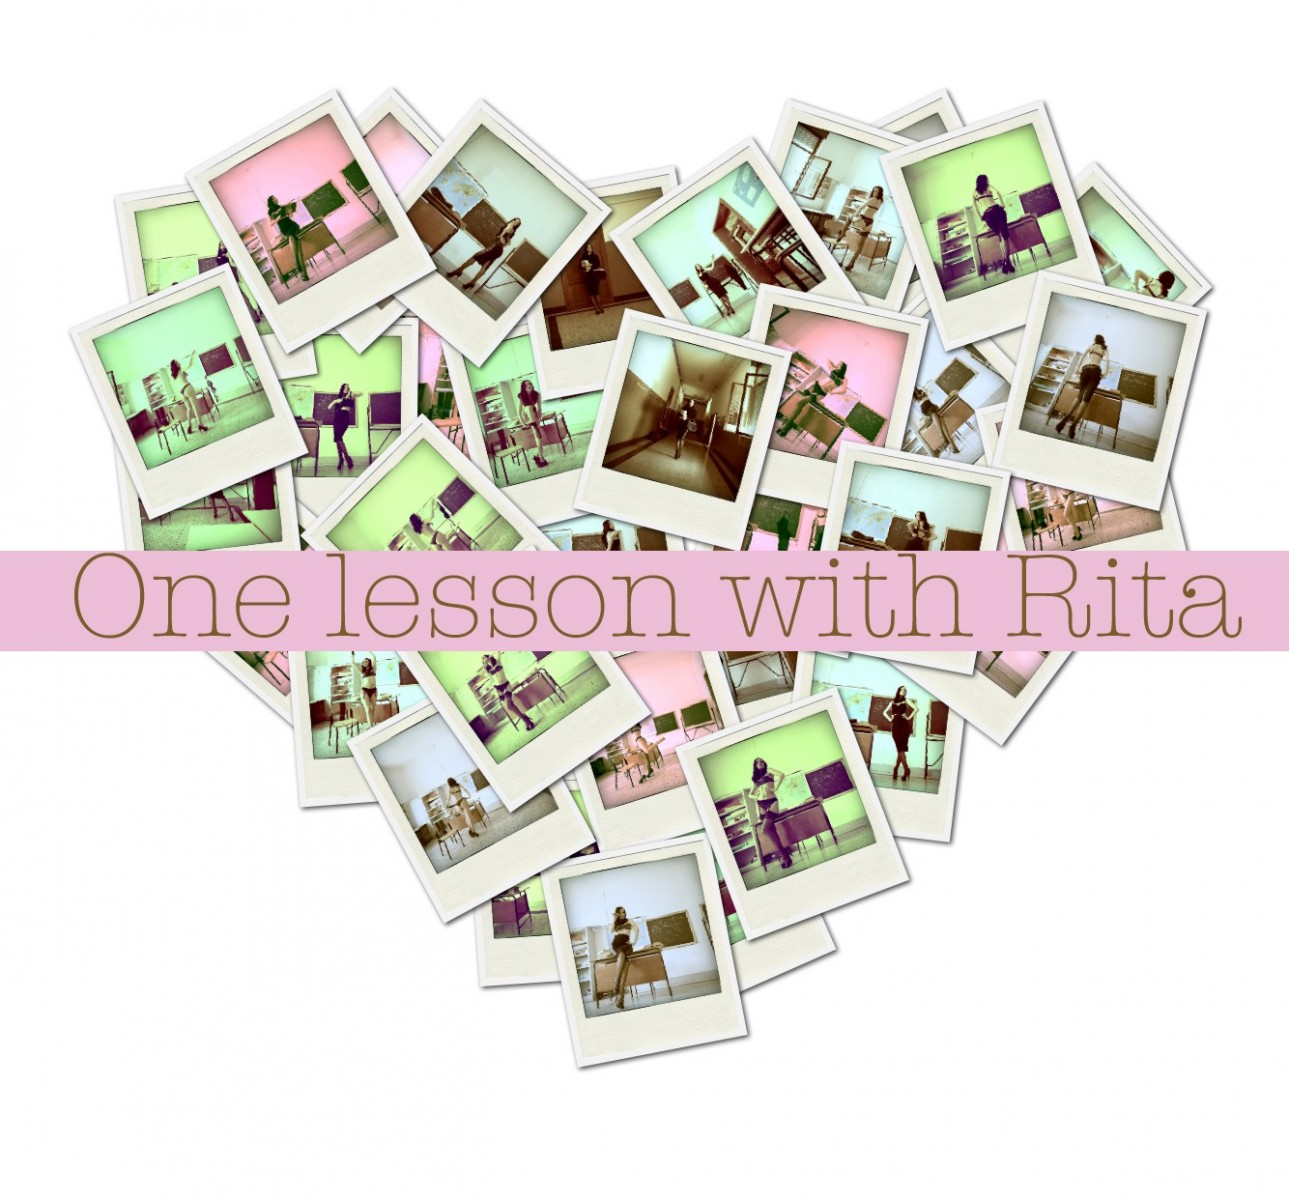 One Lesson with Rita